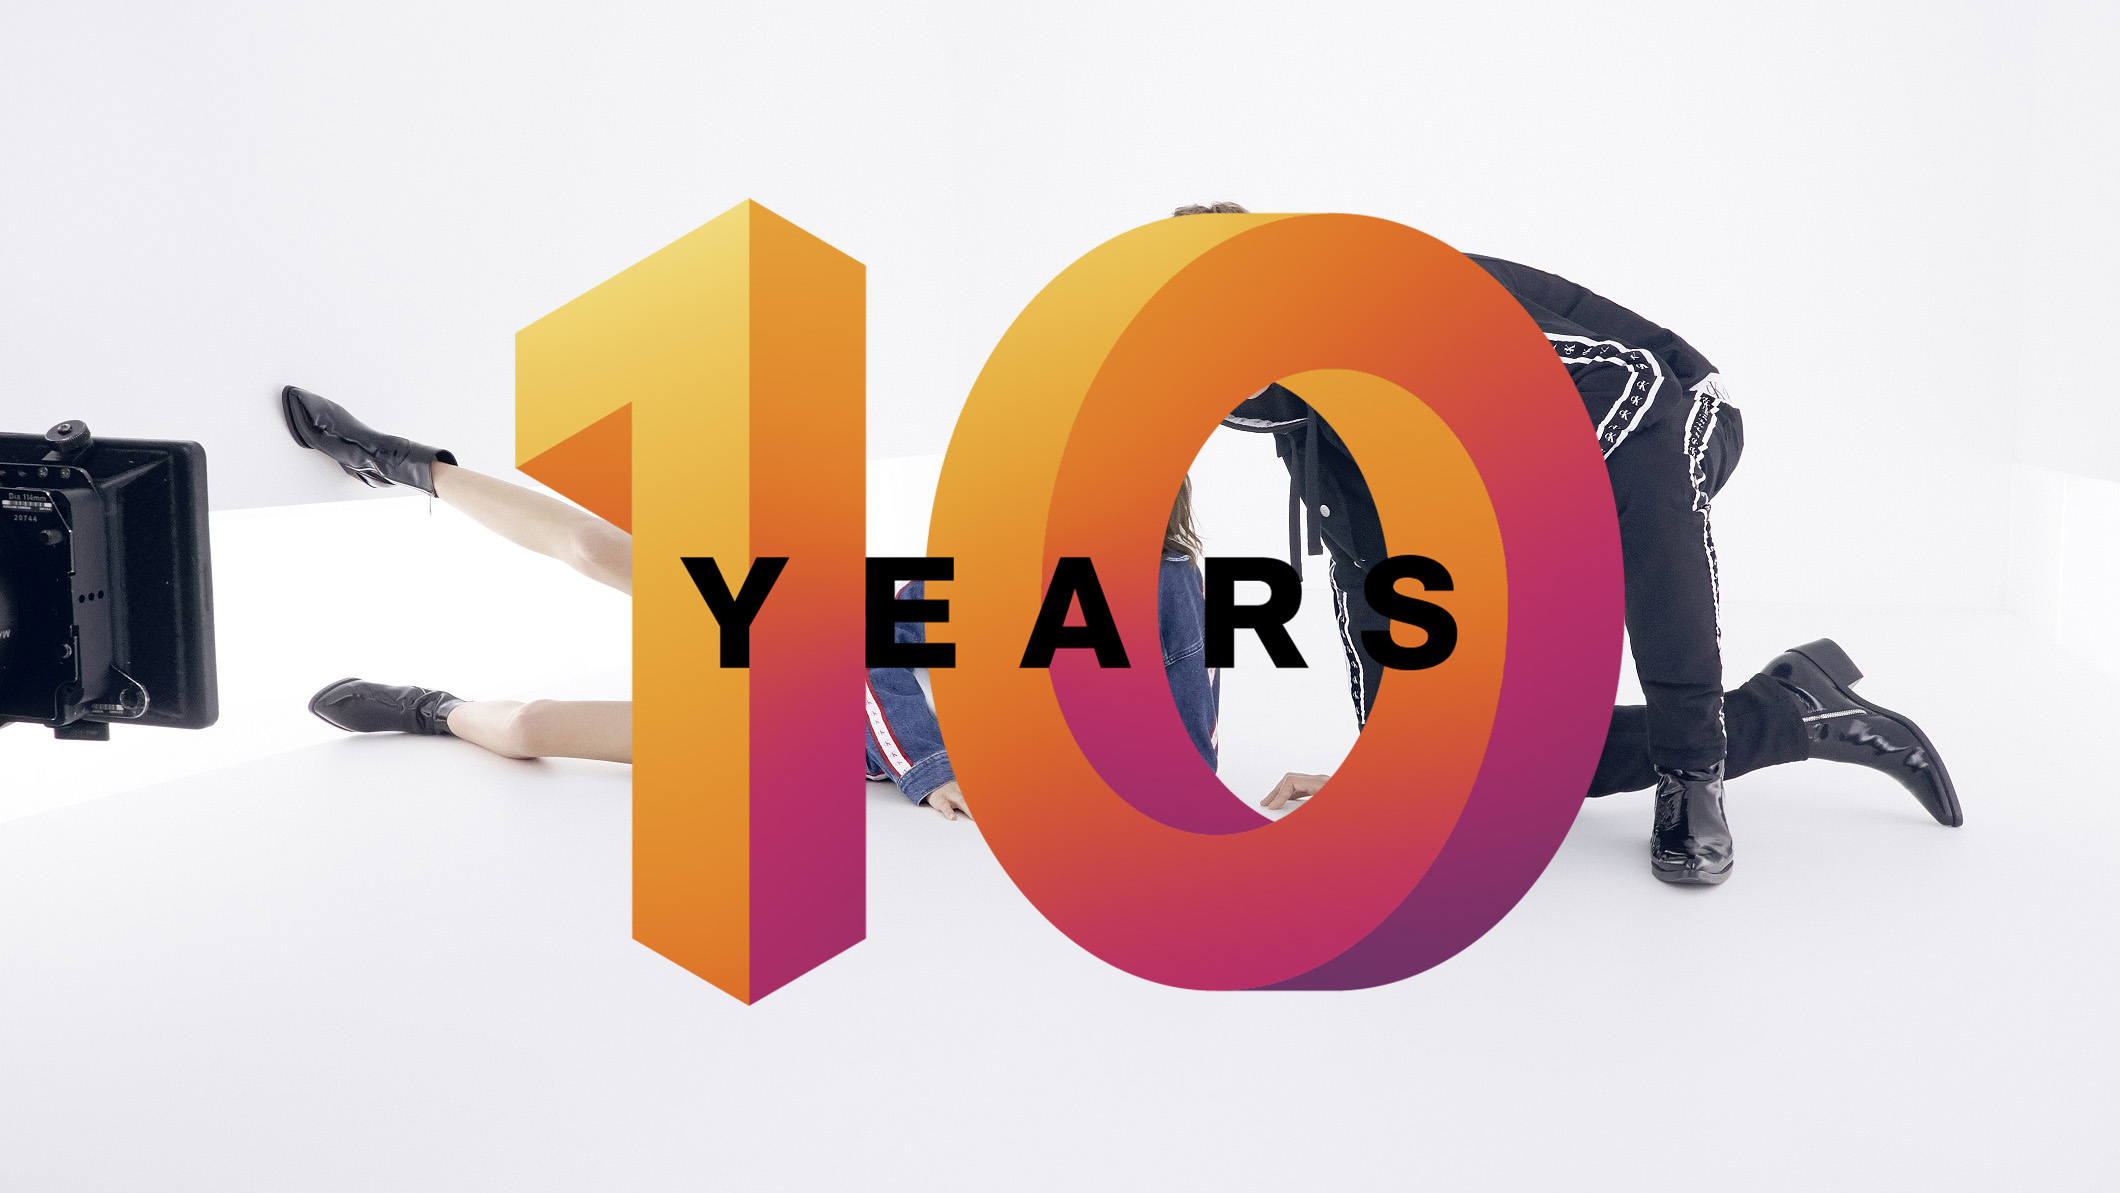 10 YEARS campaign teaser image